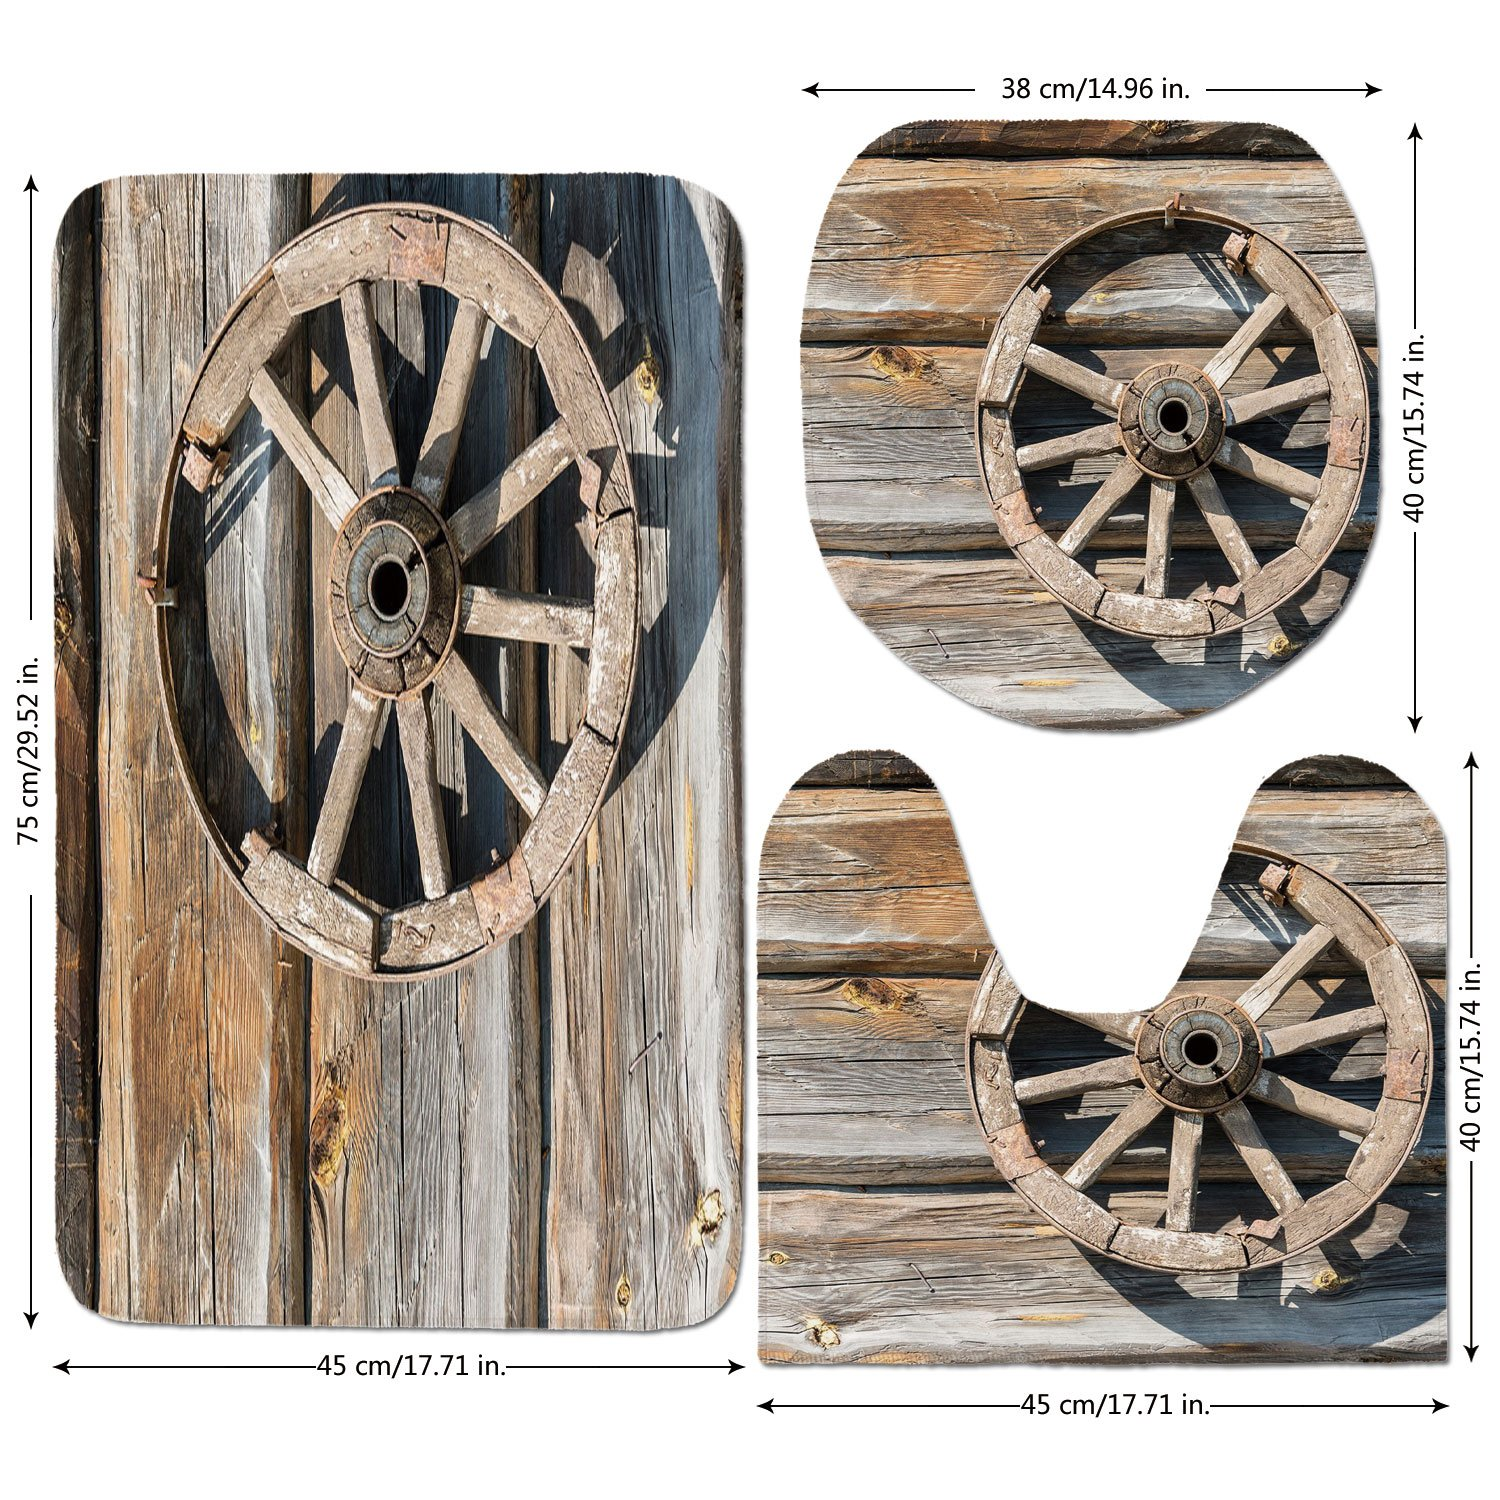 3 Piece Bathroom Mat Set,Barn-Wood-Wagon-Wheel,Old-Log-Wall-with-Cartwheel-Telega-Rural-Countryside-Themed-Image-Decorative,Umber-Beige.jpg,Bath Mat,Bathroom Carpet Rug,Non-Slip